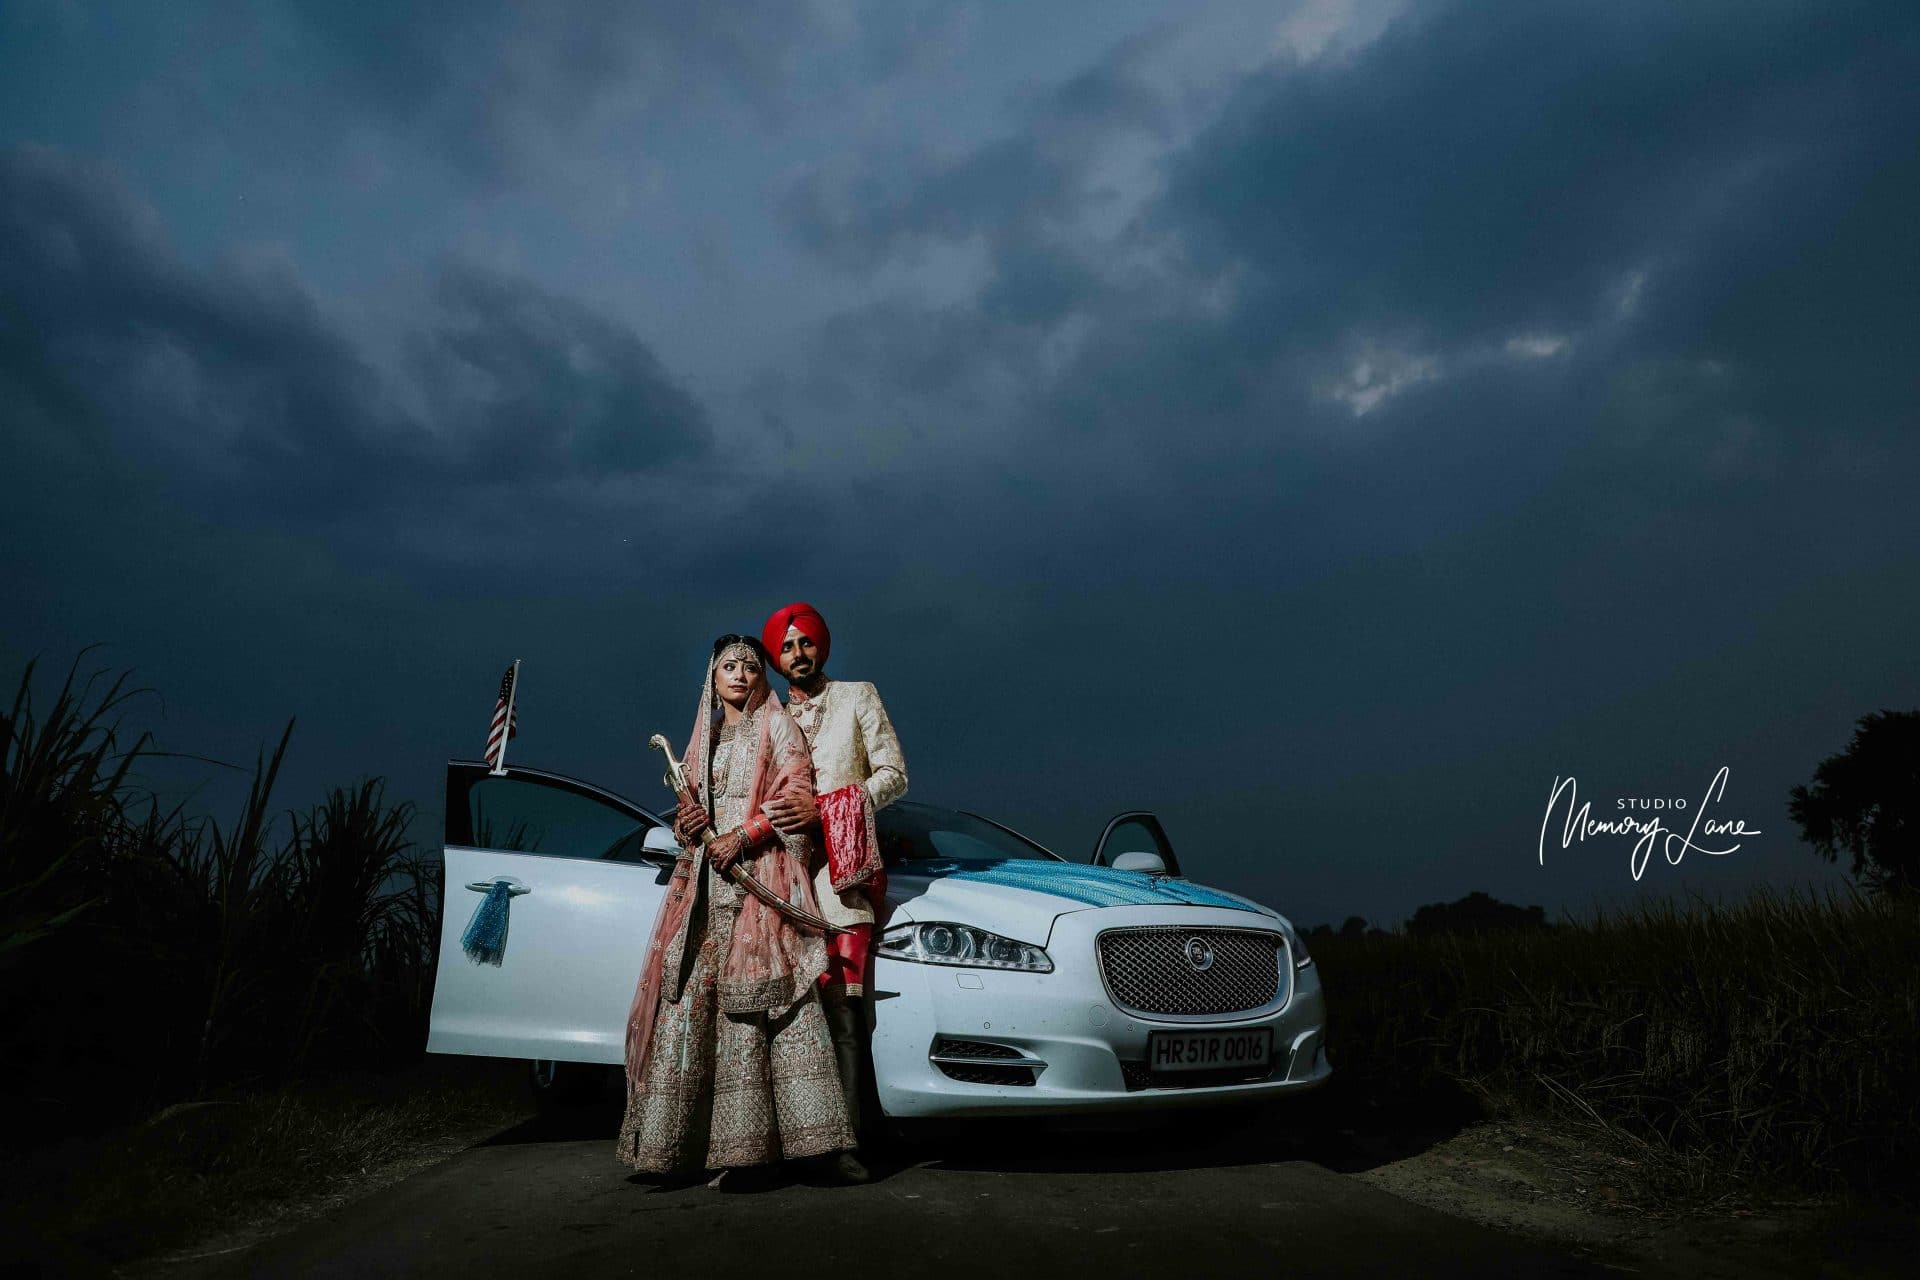 Best wedding photographer Jalandhar | Wedding Goals!